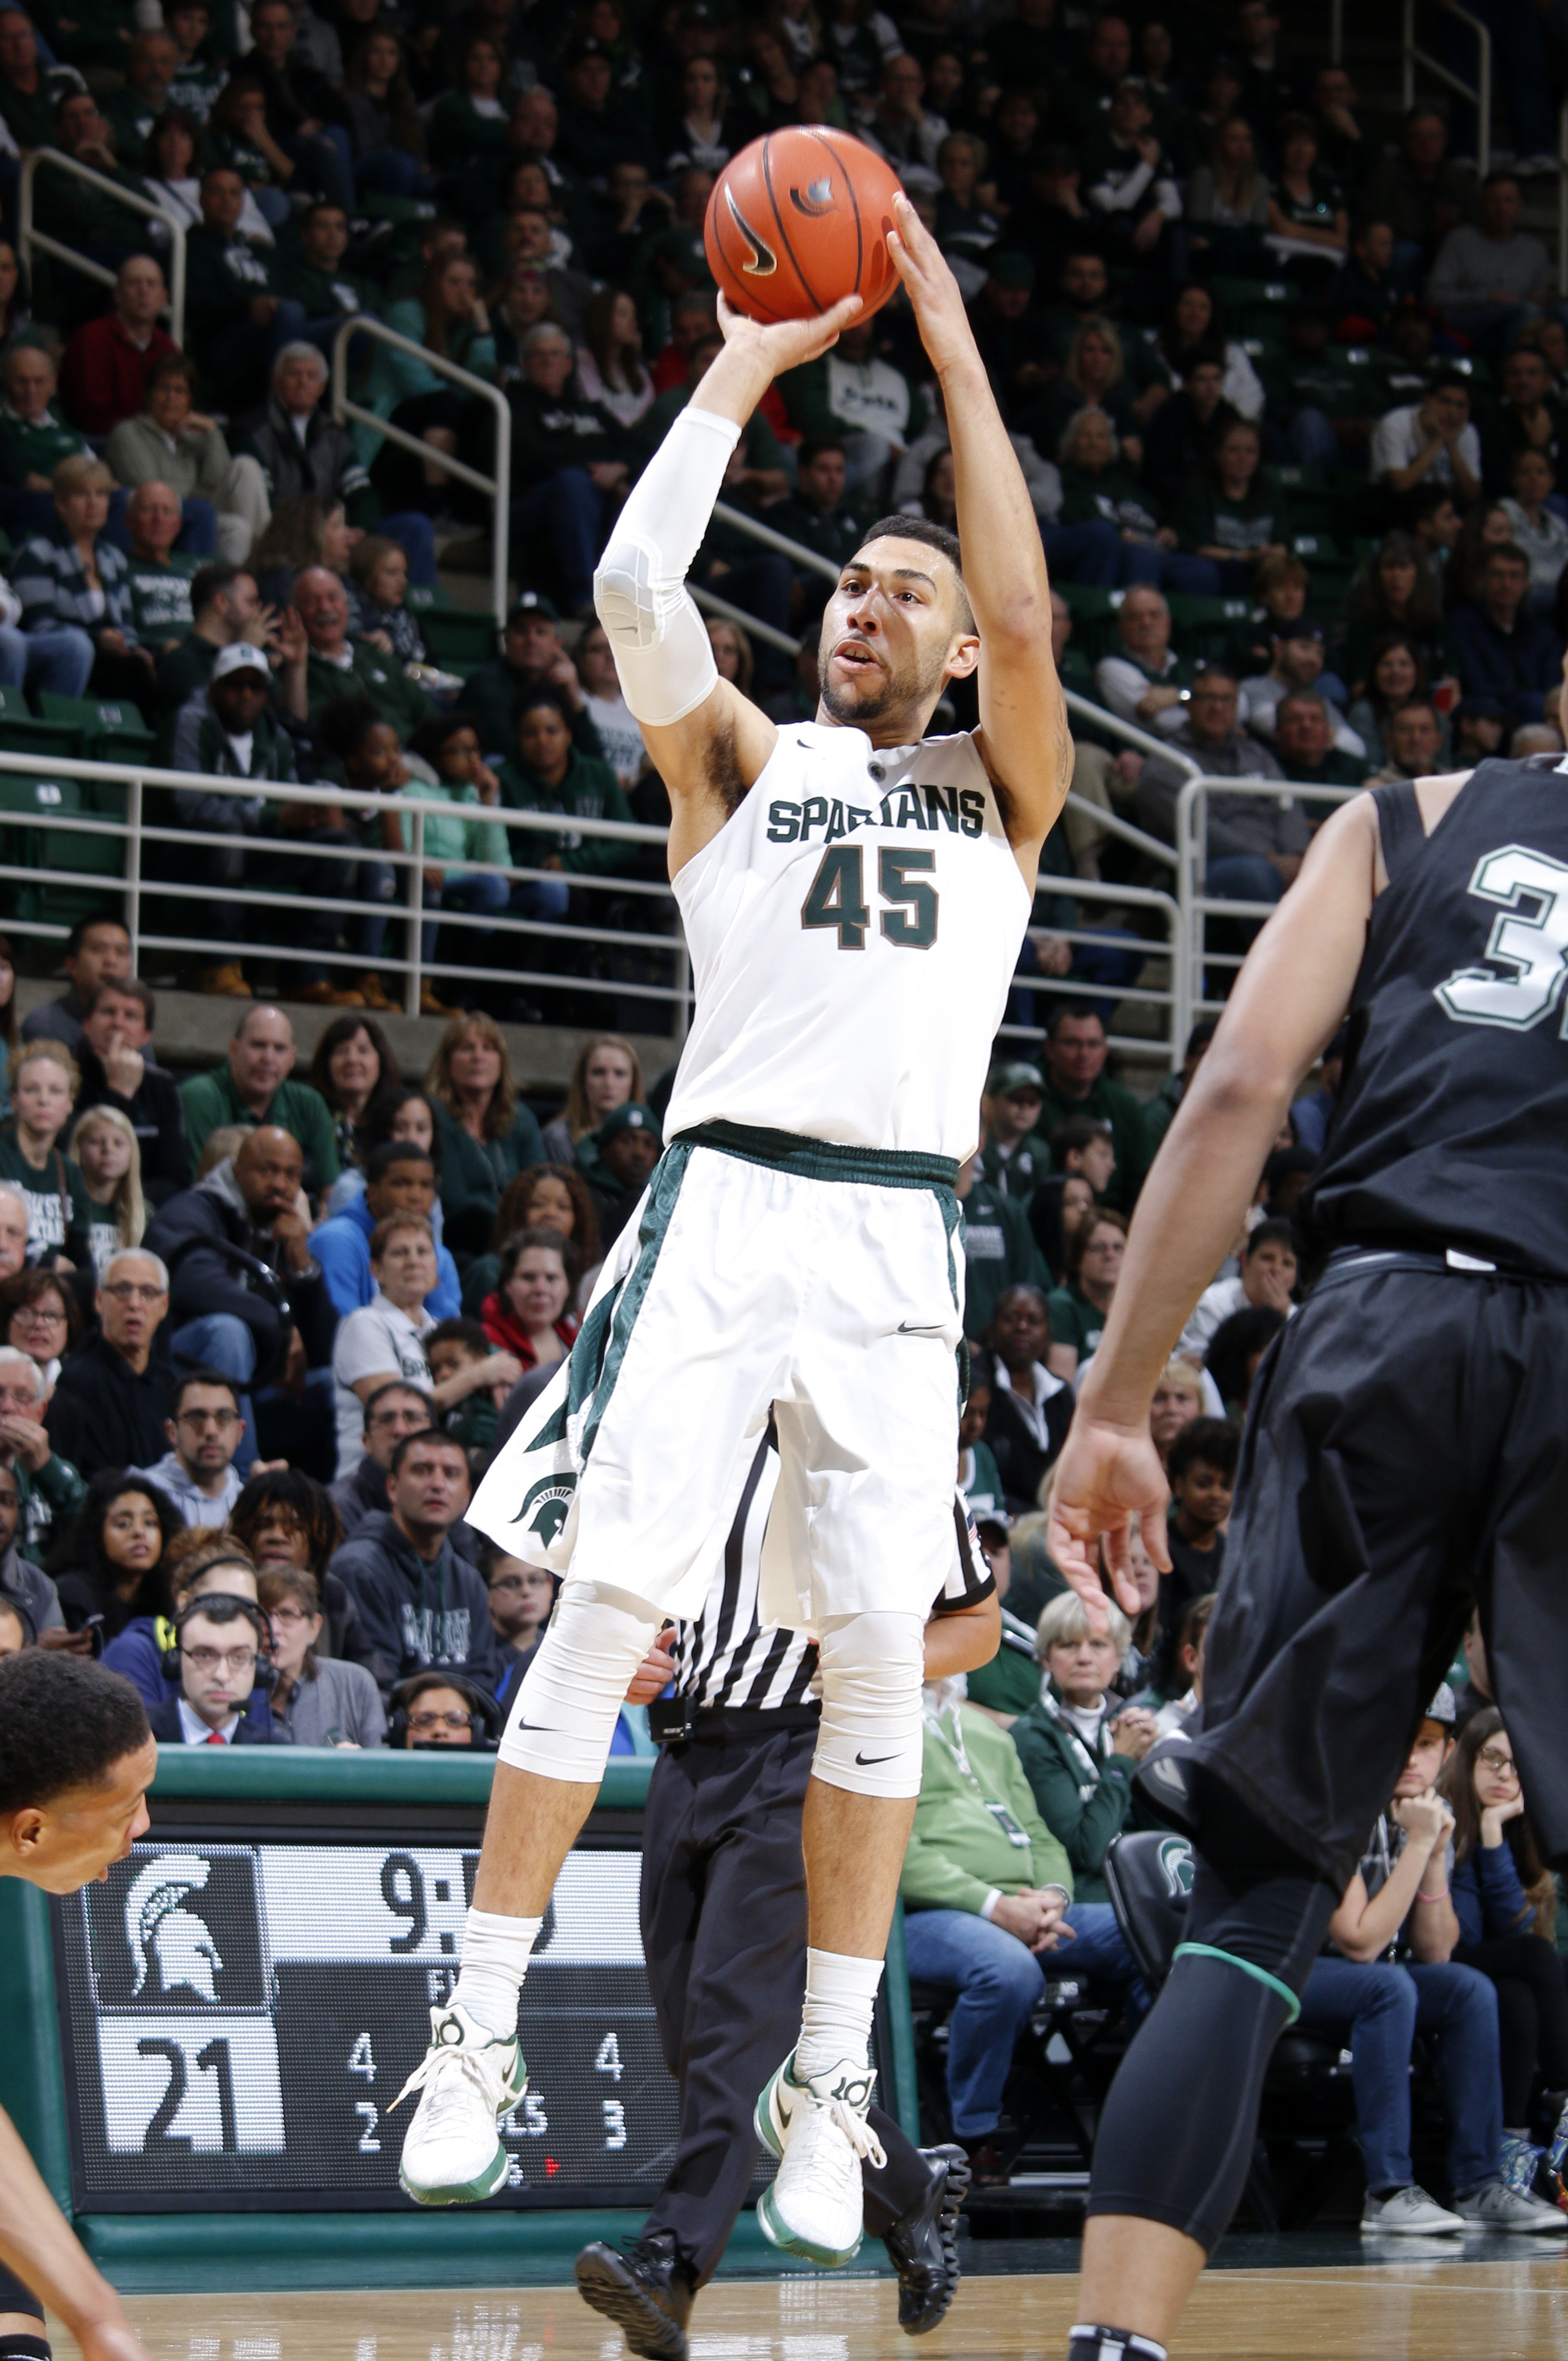 Michigan State's Denzel Valentine (45) shoots against Binghamton during the first half of an NCAA college basketball game, Saturday, Dec. 5, 2015, in East Lansing, Mich. (AP Photo/Al Goldis)